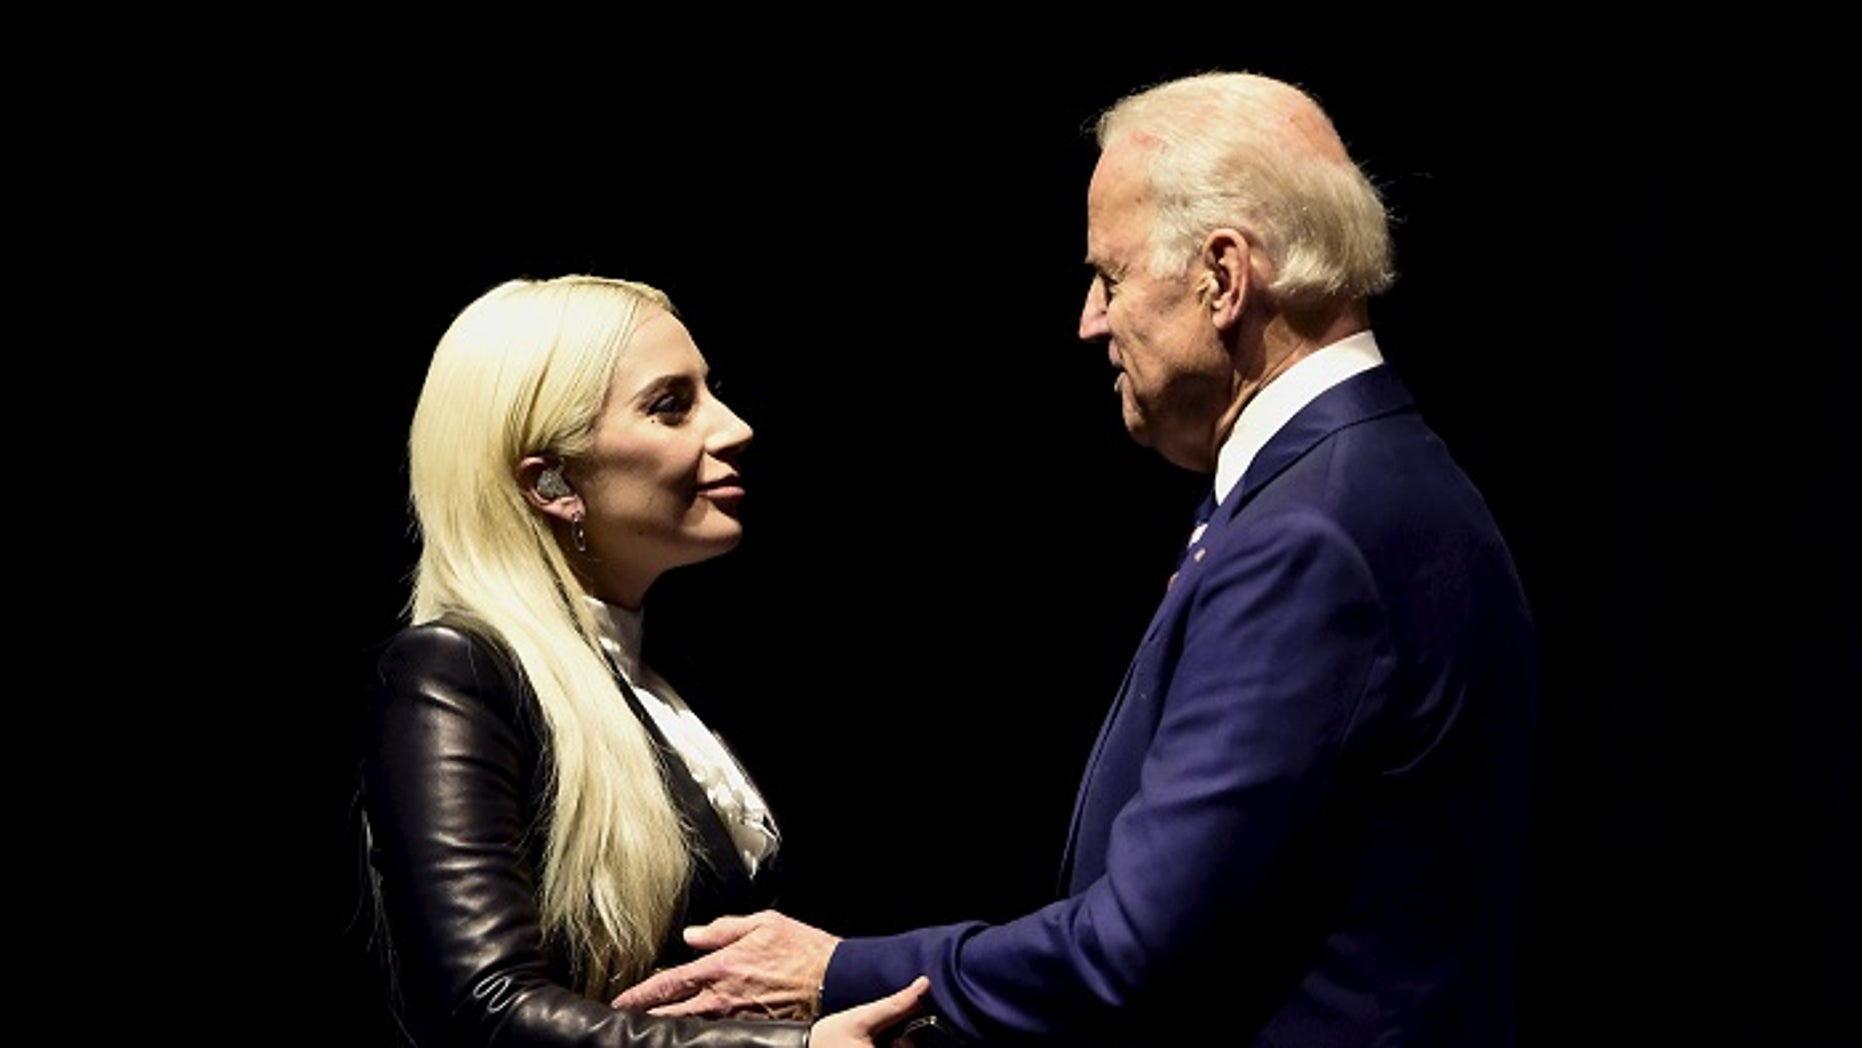 SAMANTHA: Joe biden sexual harrassment